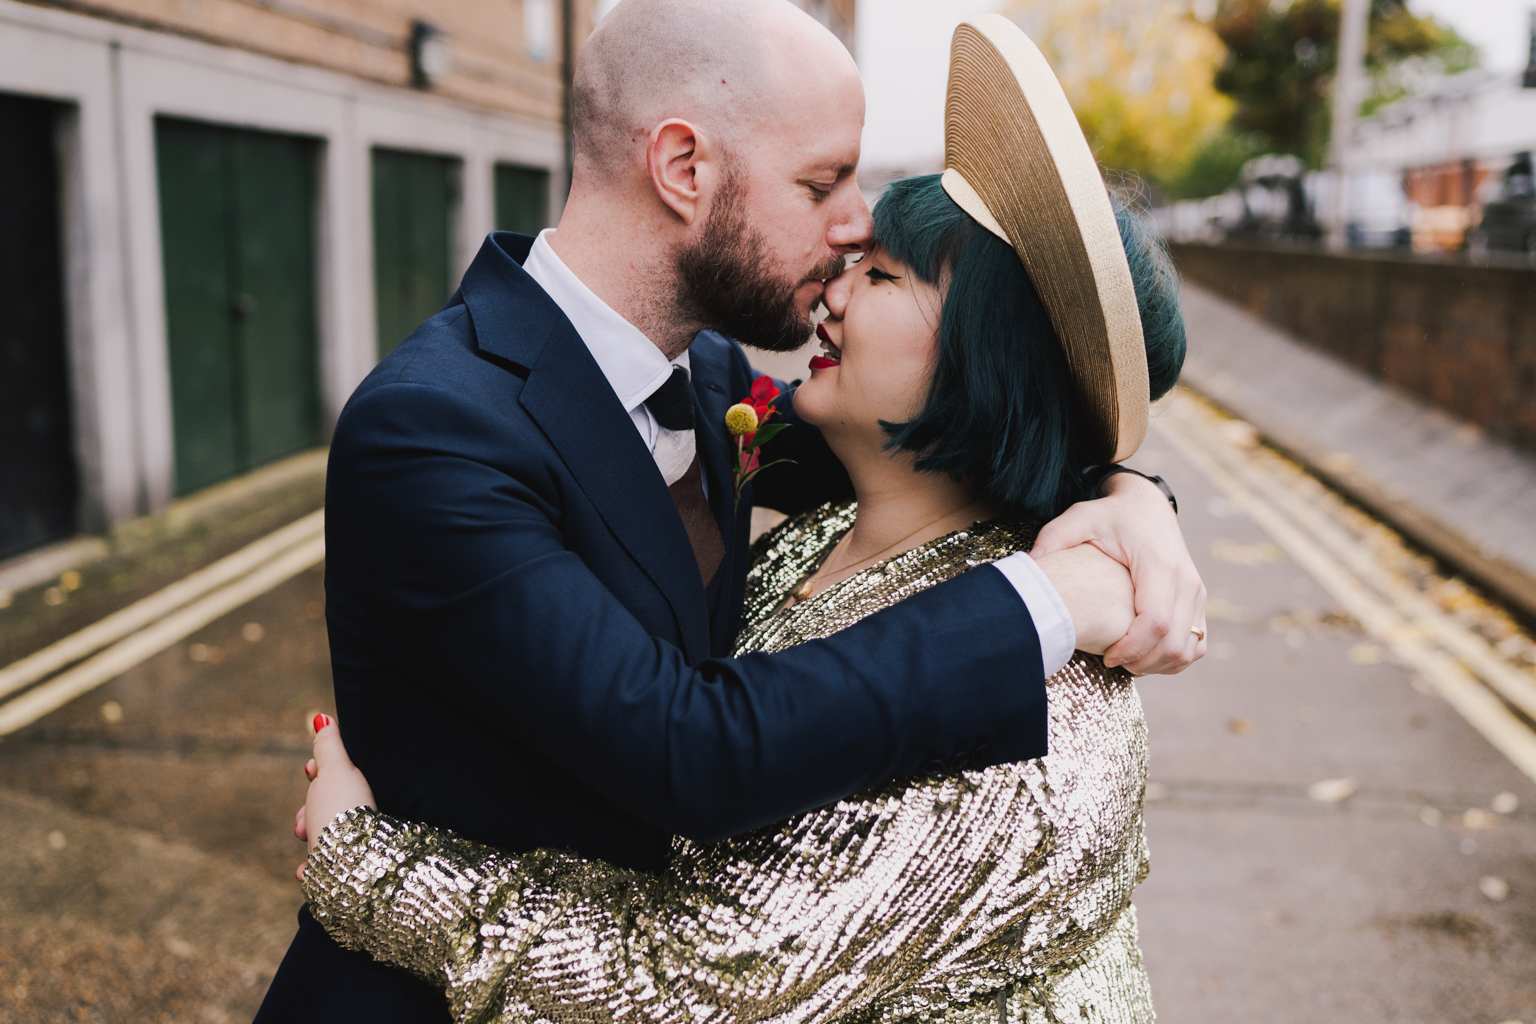 Groom kissing bride at South London Wedding by Lisa Jane Photography